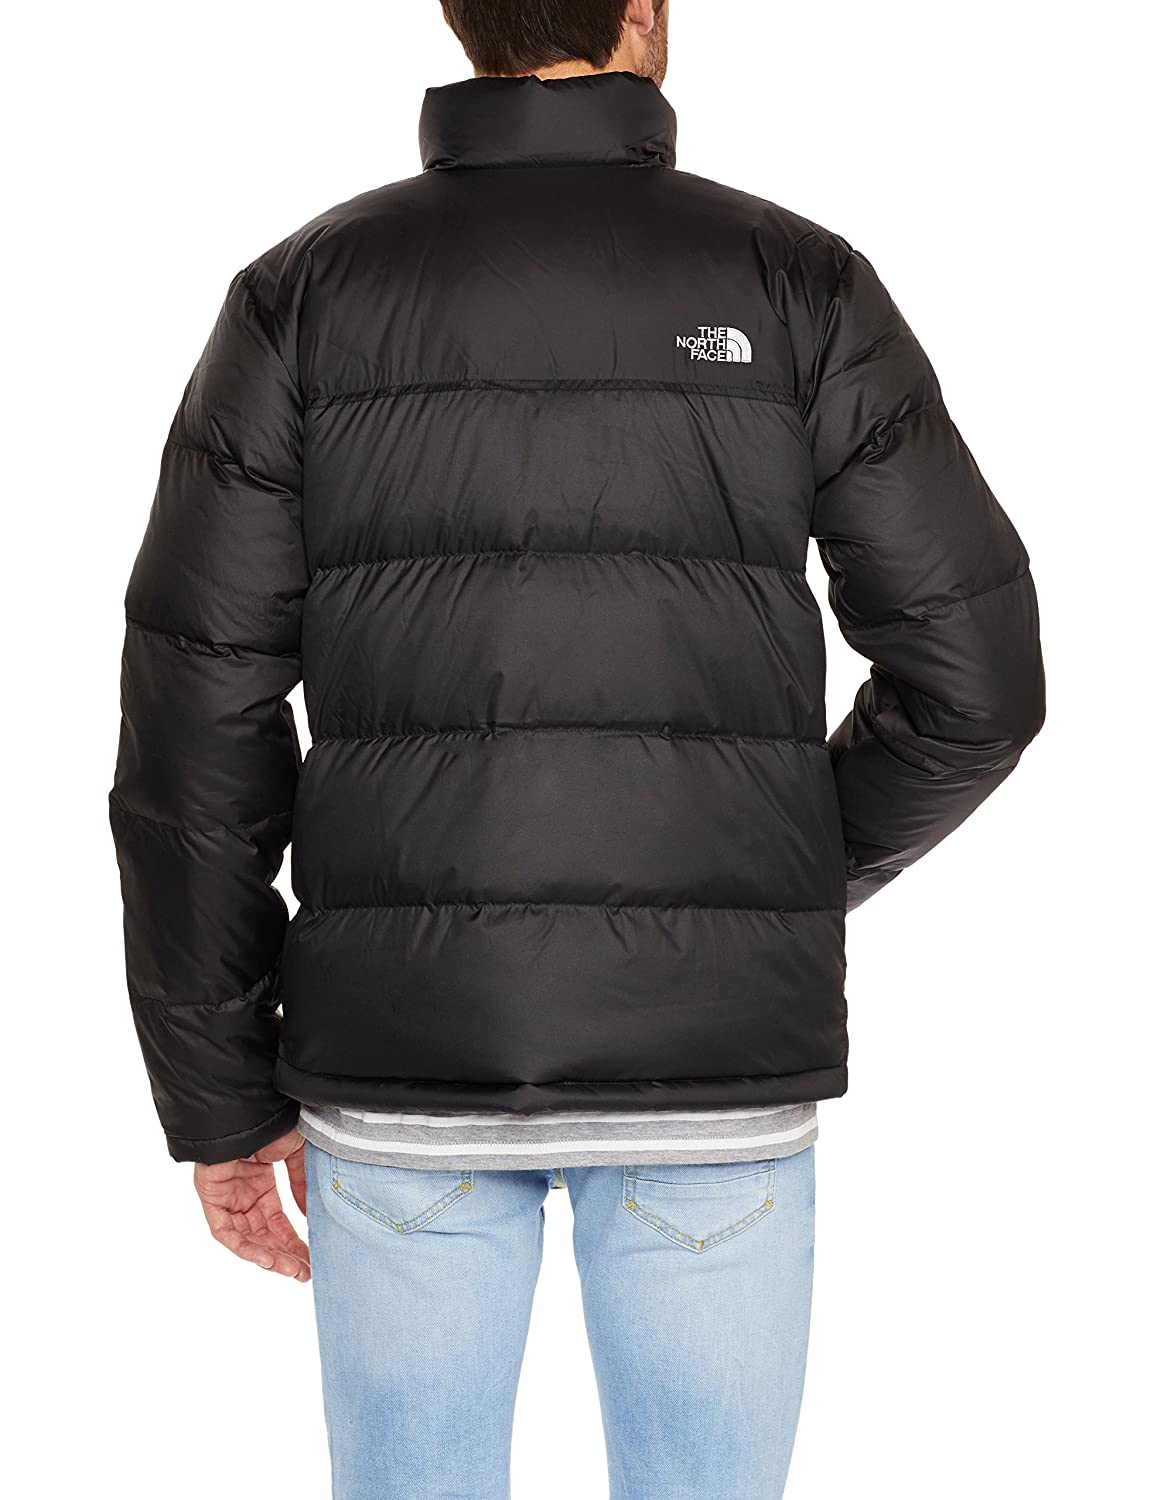 04aae98e4f Amazon.com  The North Face Nuptse Jacket - Men s  Sports   Outdoors